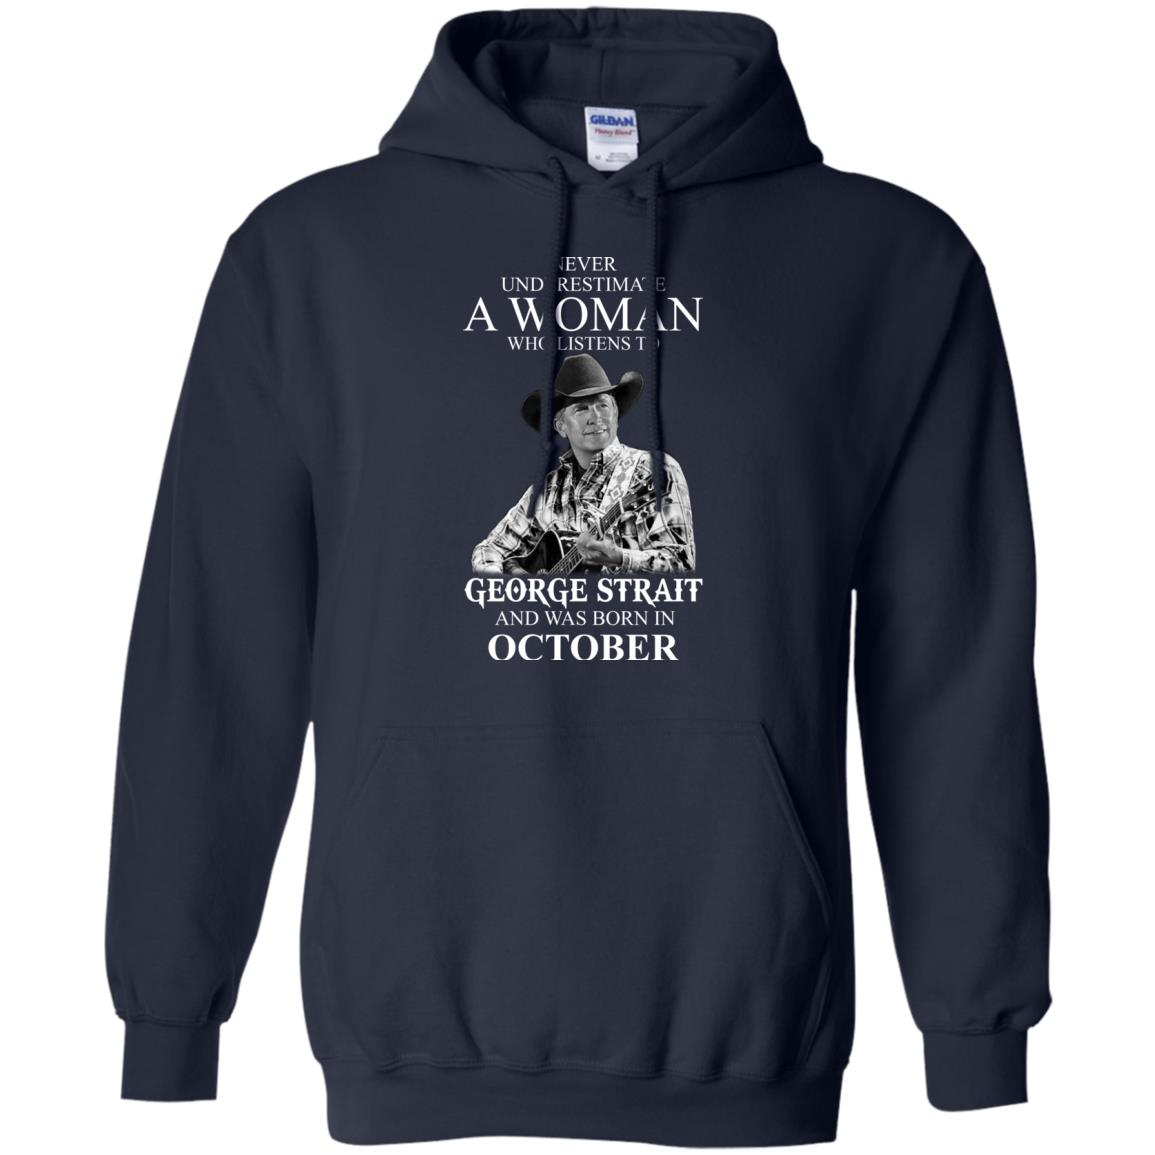 image 367 - Never Underestimate A Woman Who Listens To George Strait And Was Born In October shirt